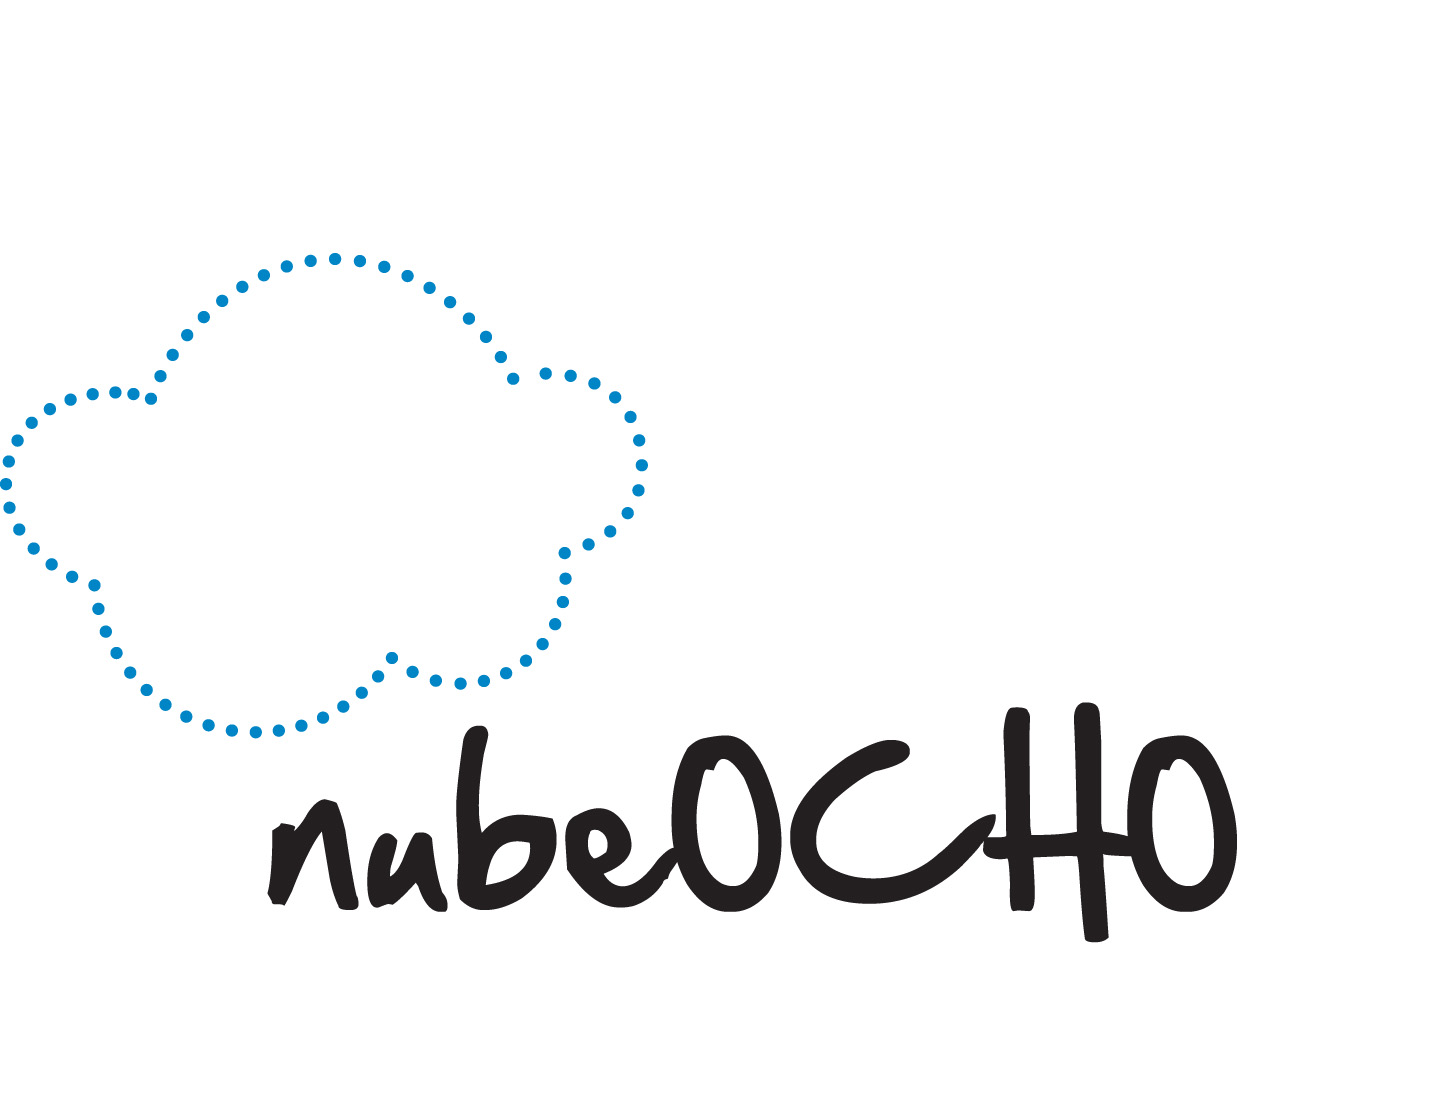 NubeOcho